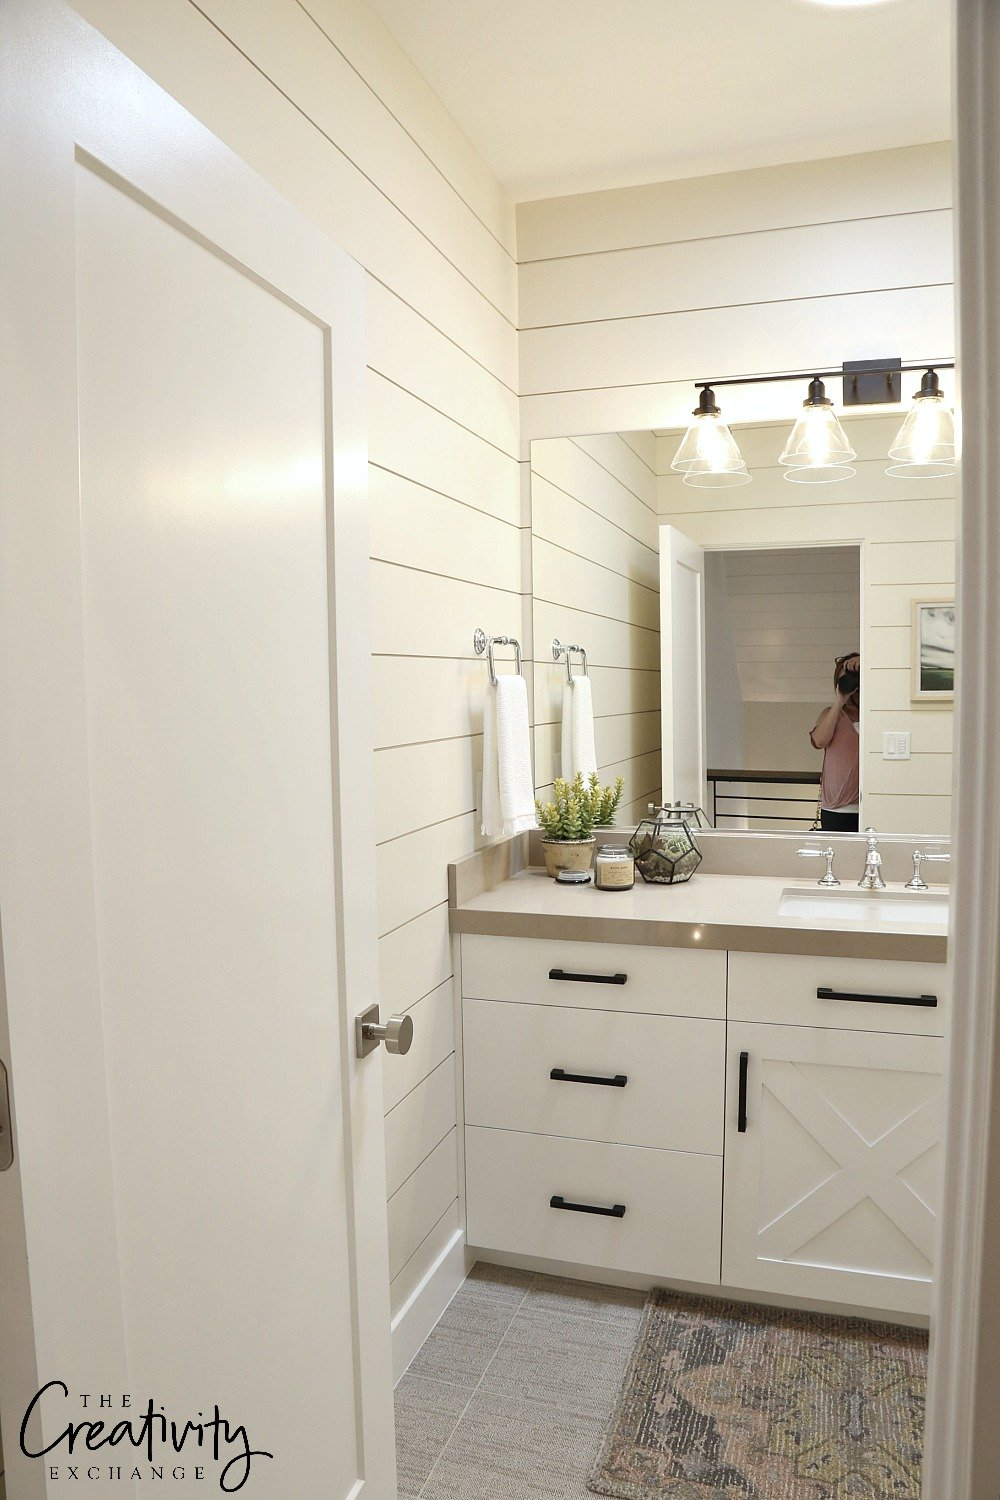 Painted shiplap wall in bathroom.